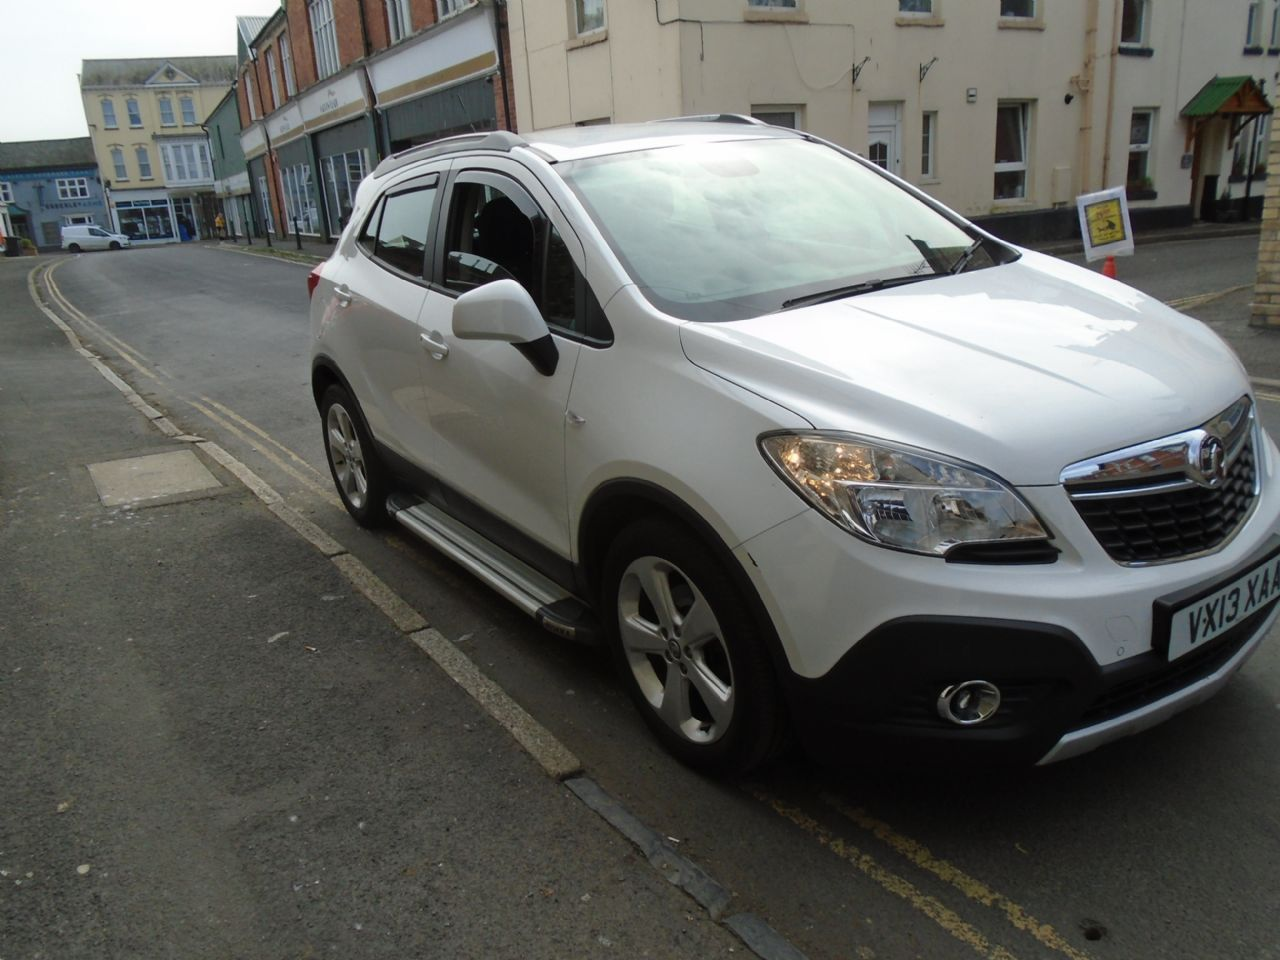 VAUXHALL Mokka Exclusiv 1.6 16v 115PS S/S 5-spd - Picture 1